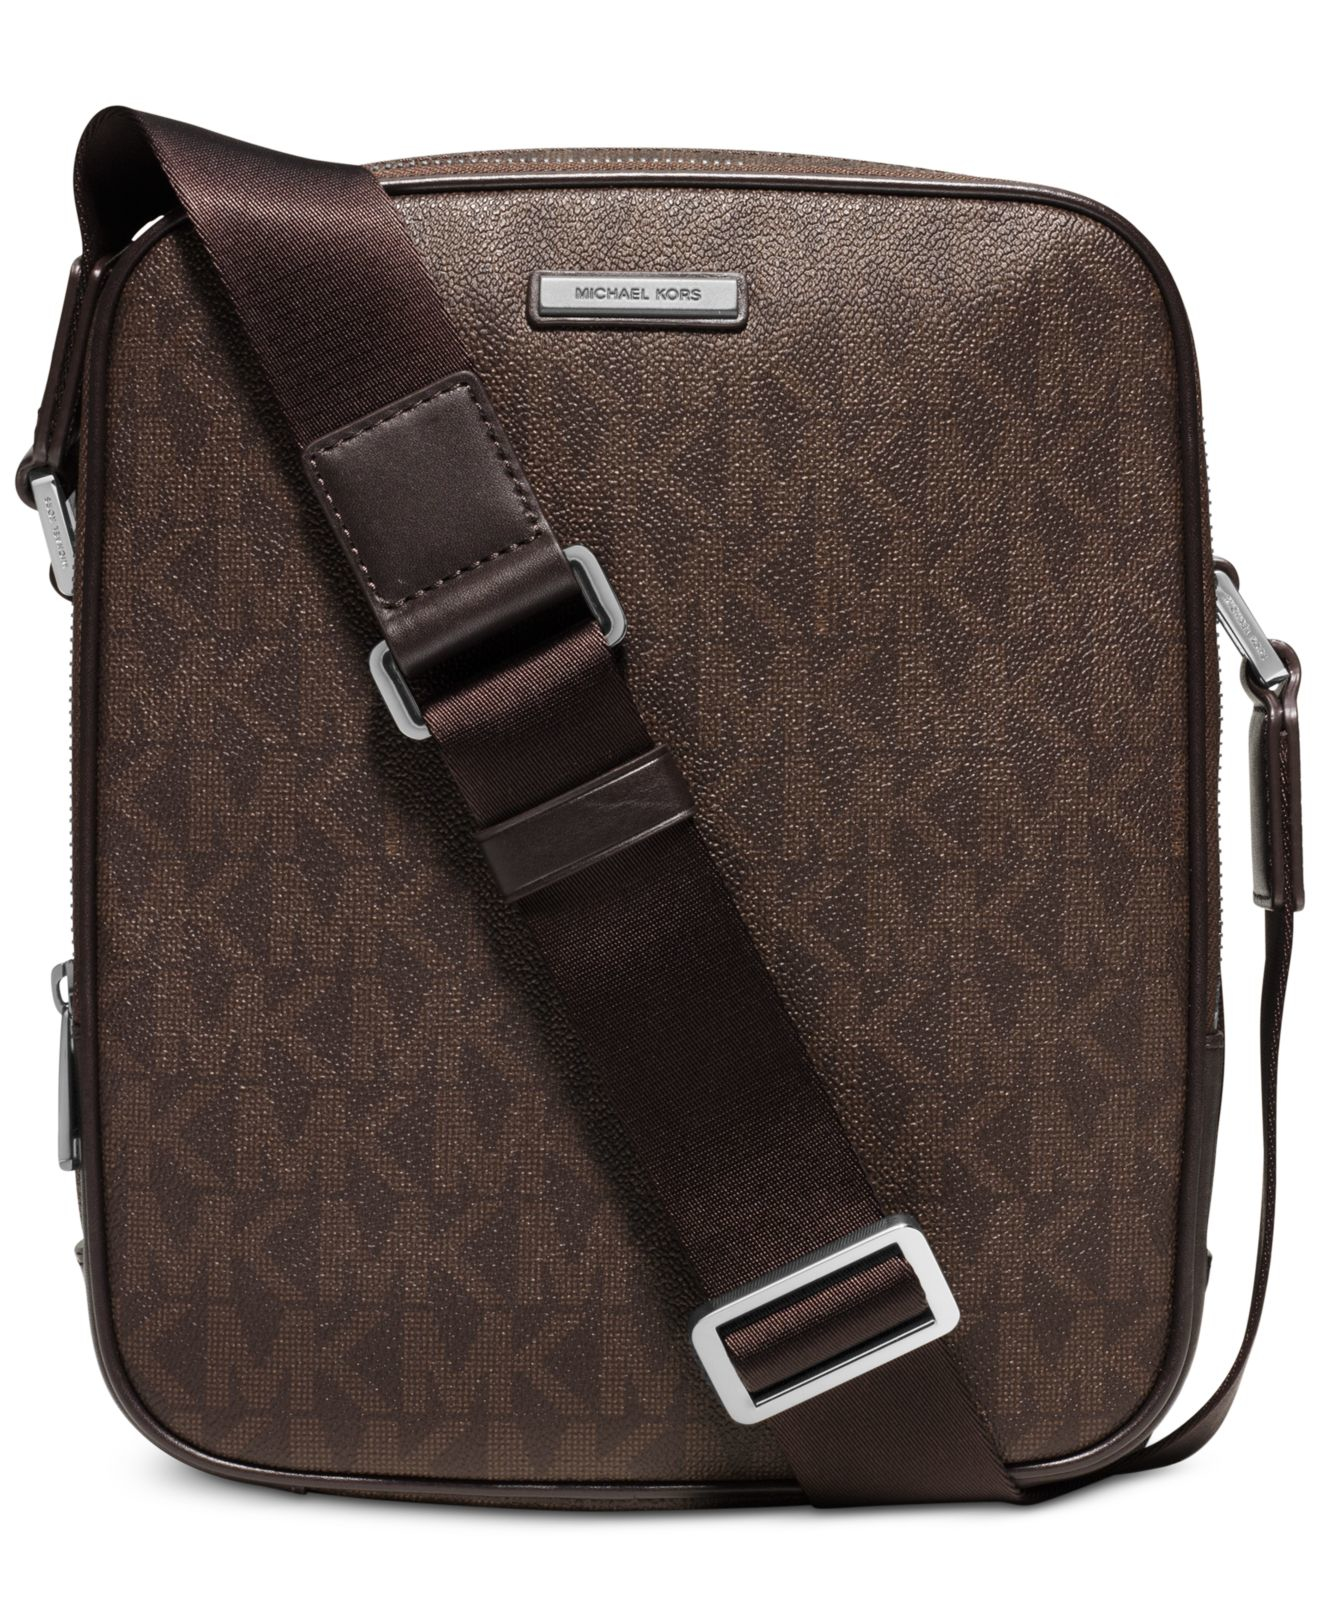 b7b97aedf7d0 Michael Kors Mens Bag | Stanford Center for Opportunity Policy in ...